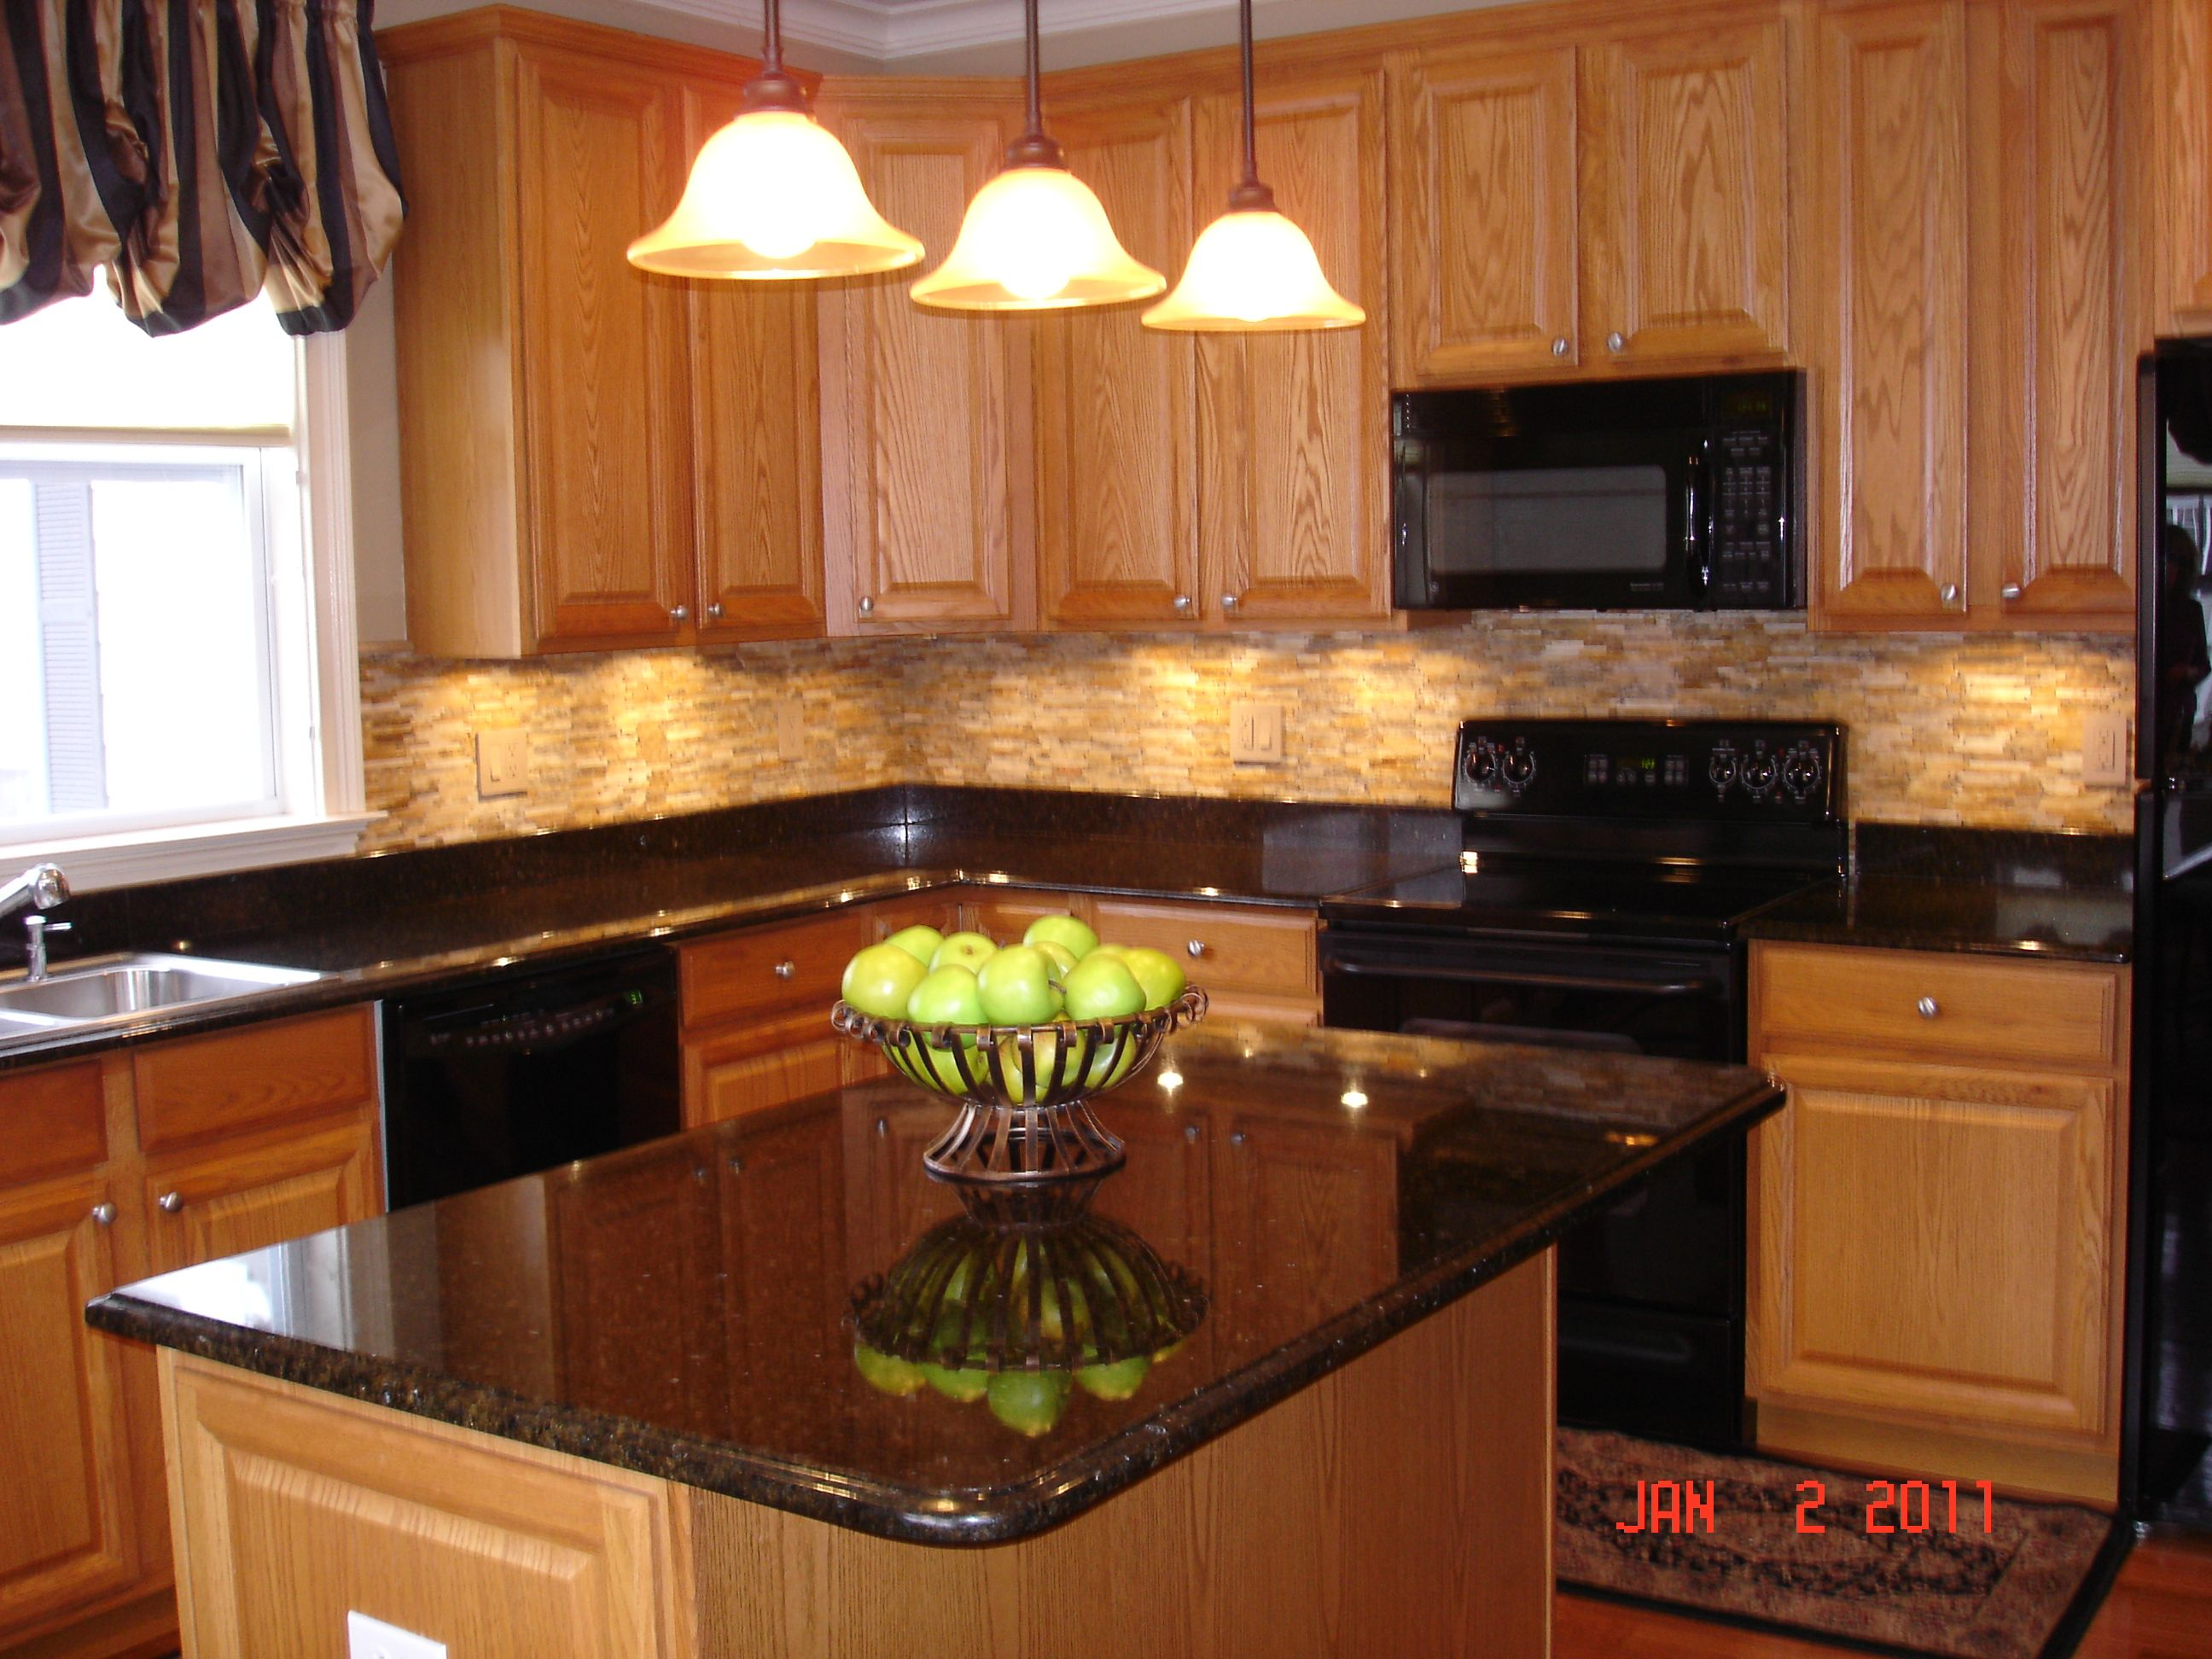 Oak Wood Cabinetstogo With Under Cabinet Lighting And Pendant Lighting Plus Black Granite